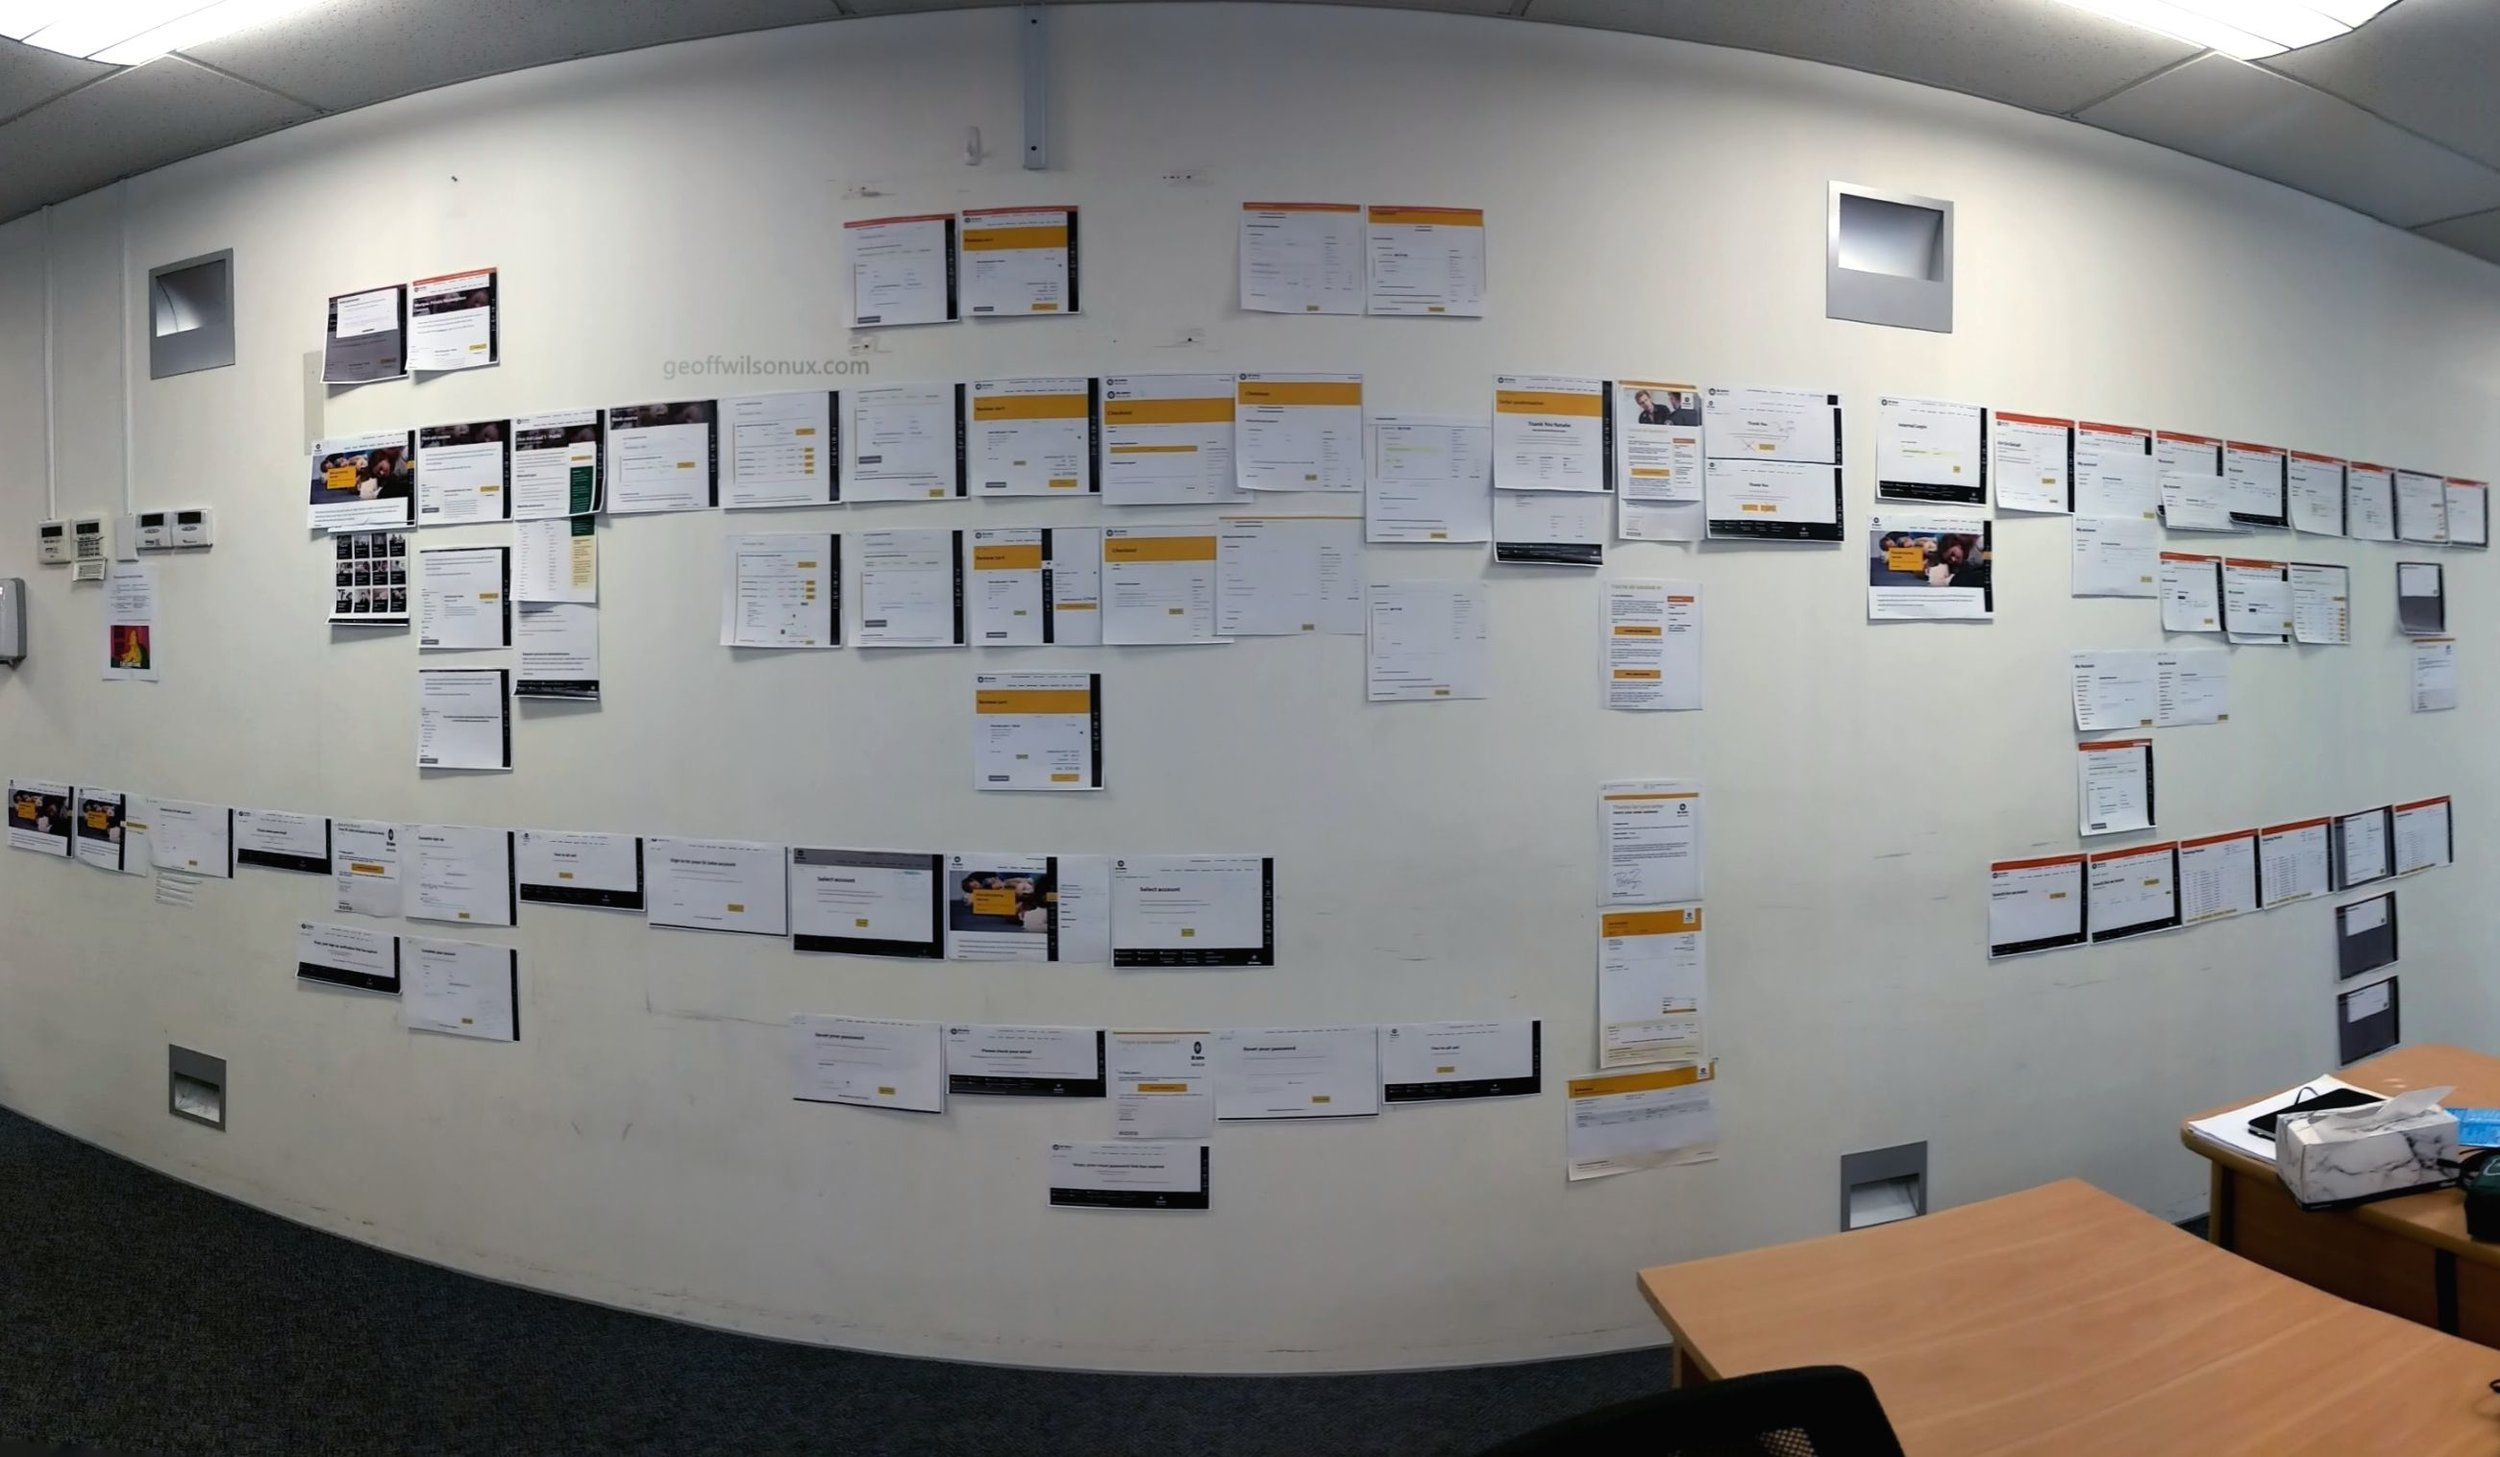 It took a year and a half to get to this point, but we're now onto our third major release including features and screens seen on this wall to be released mid-2019.